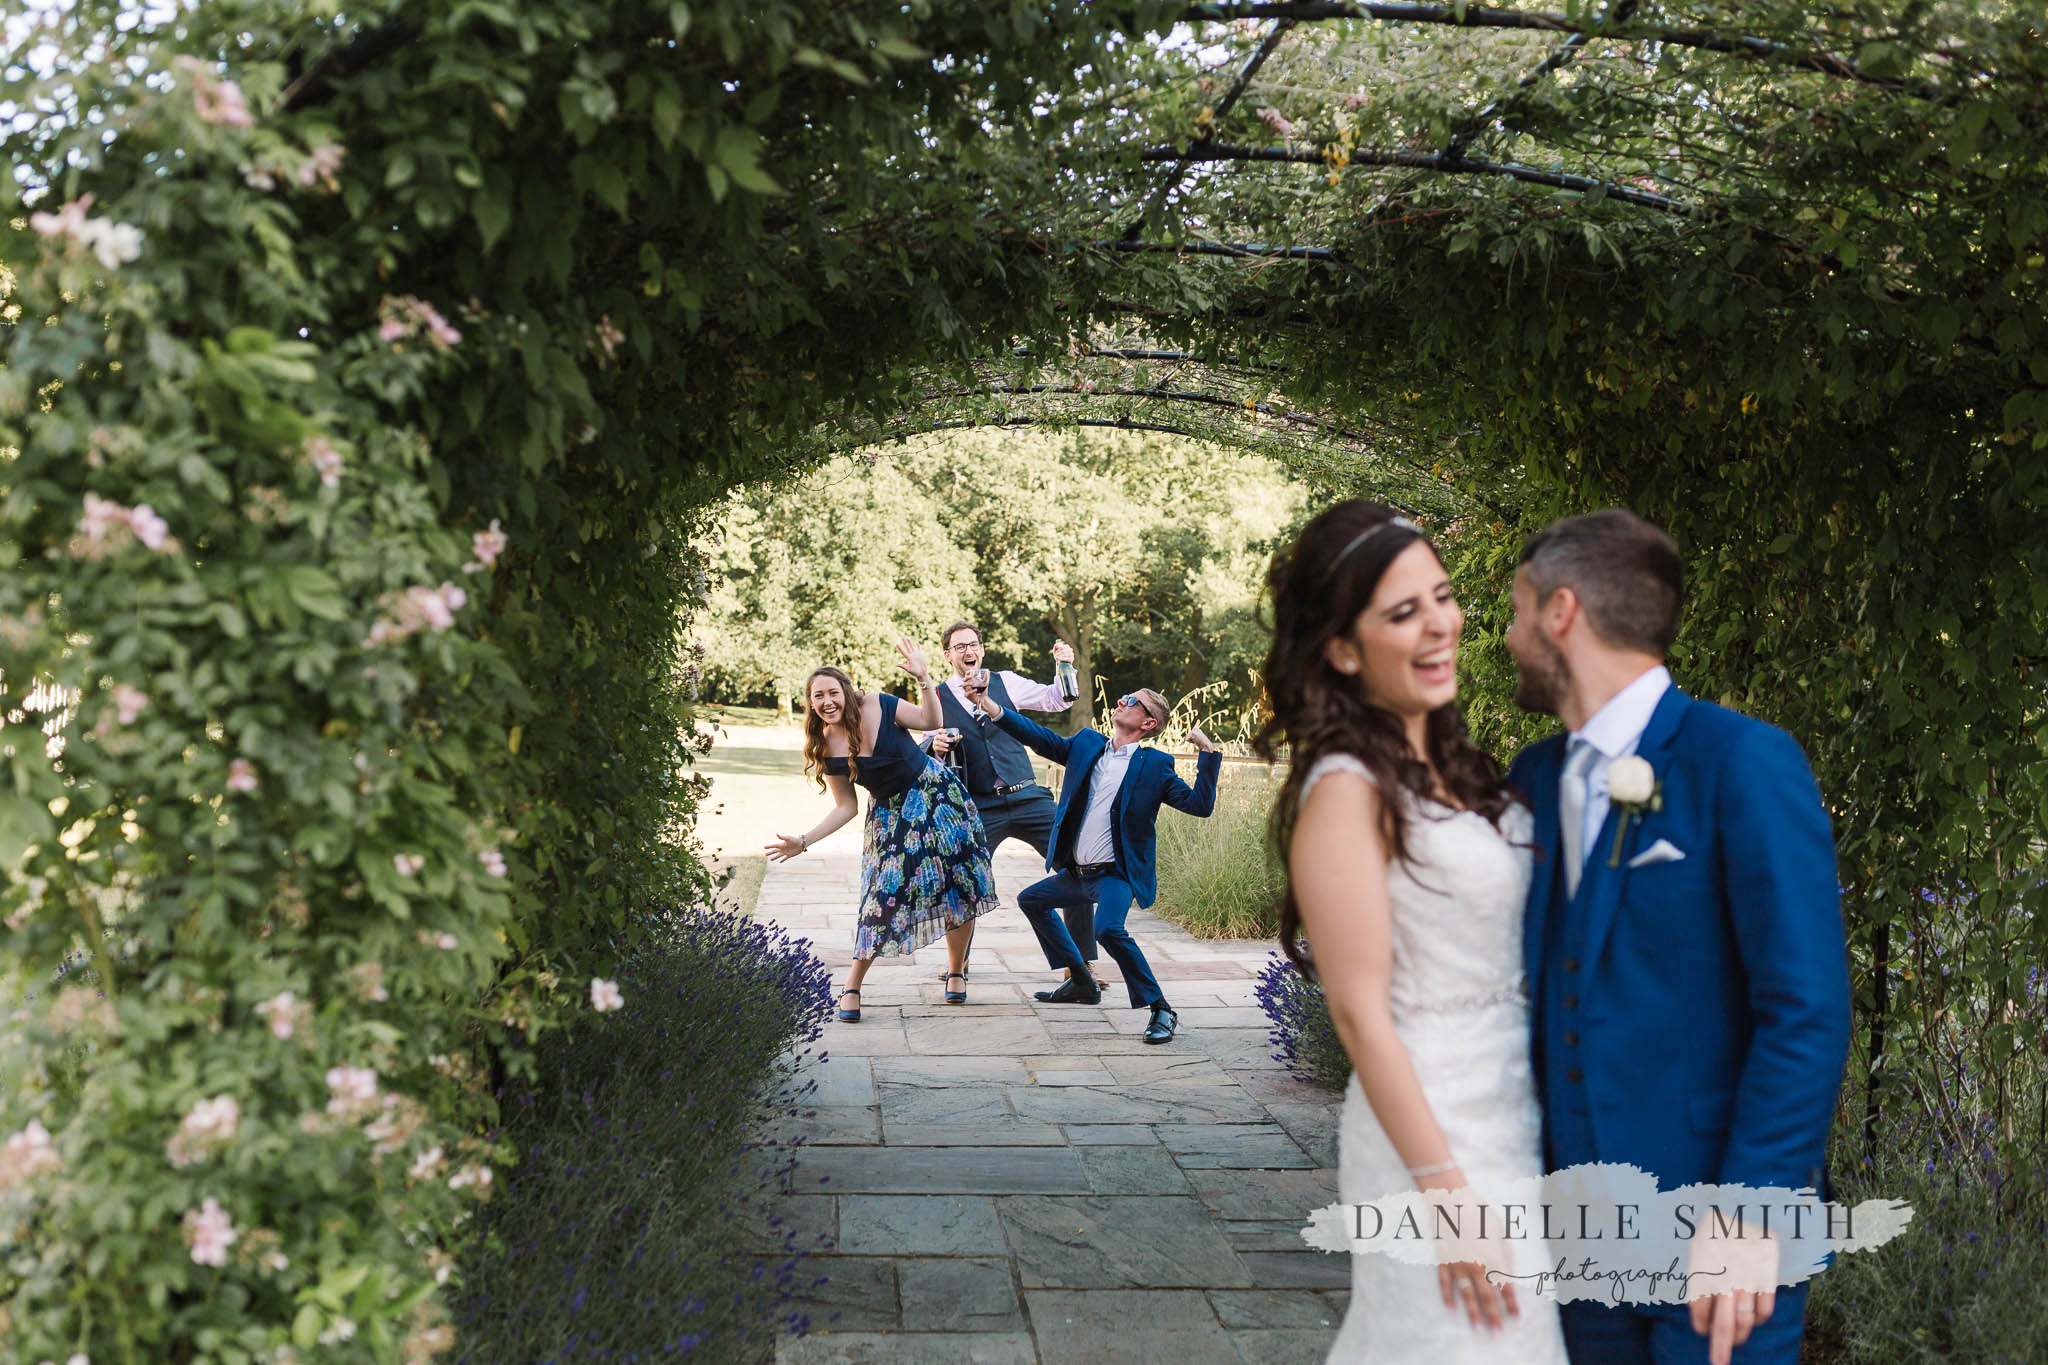 wedding guests photo bombing at sopwell house